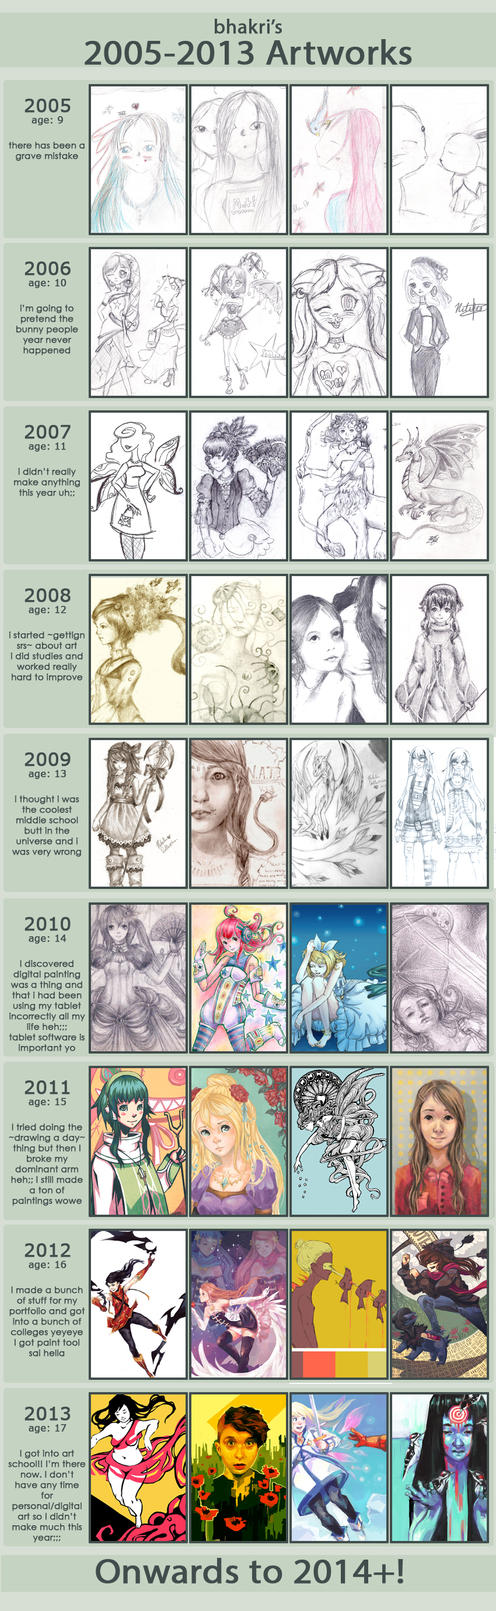 Improvement Meme 2005-2013, 9-17 by bhakri